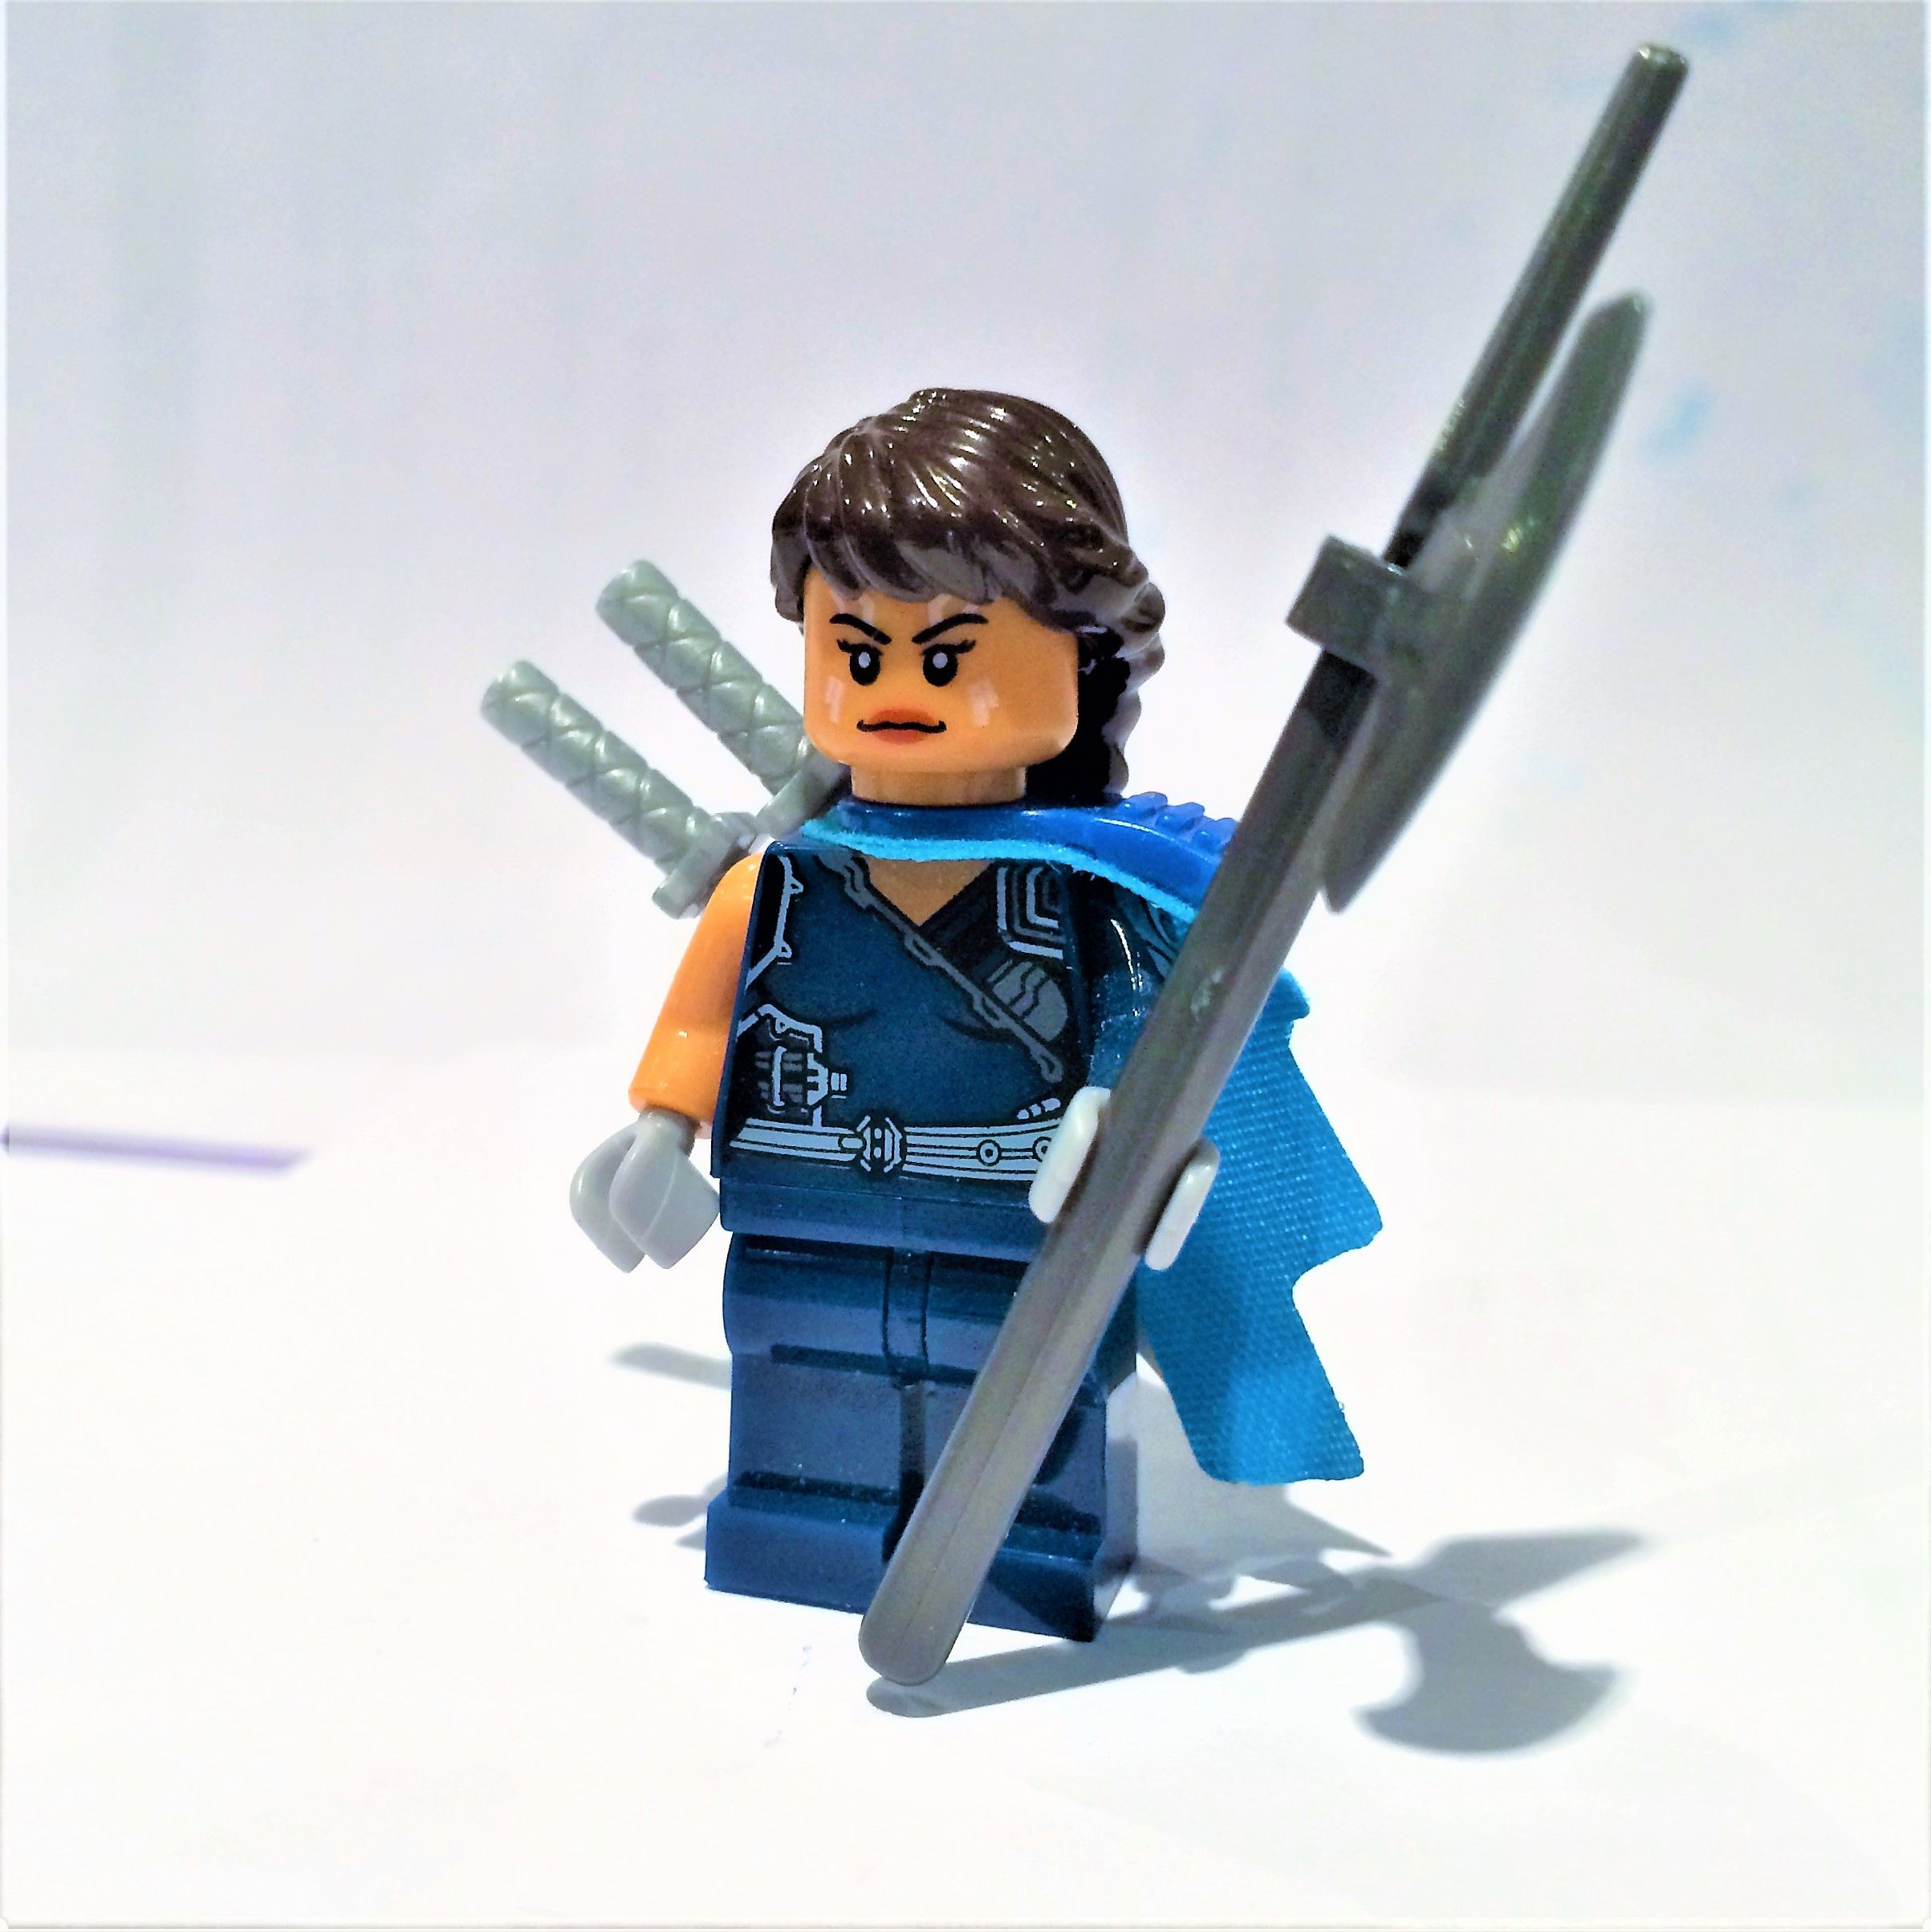 Valkyrie Minifigure Printed on LEGO Parts Custom Printed on LEGO Parts